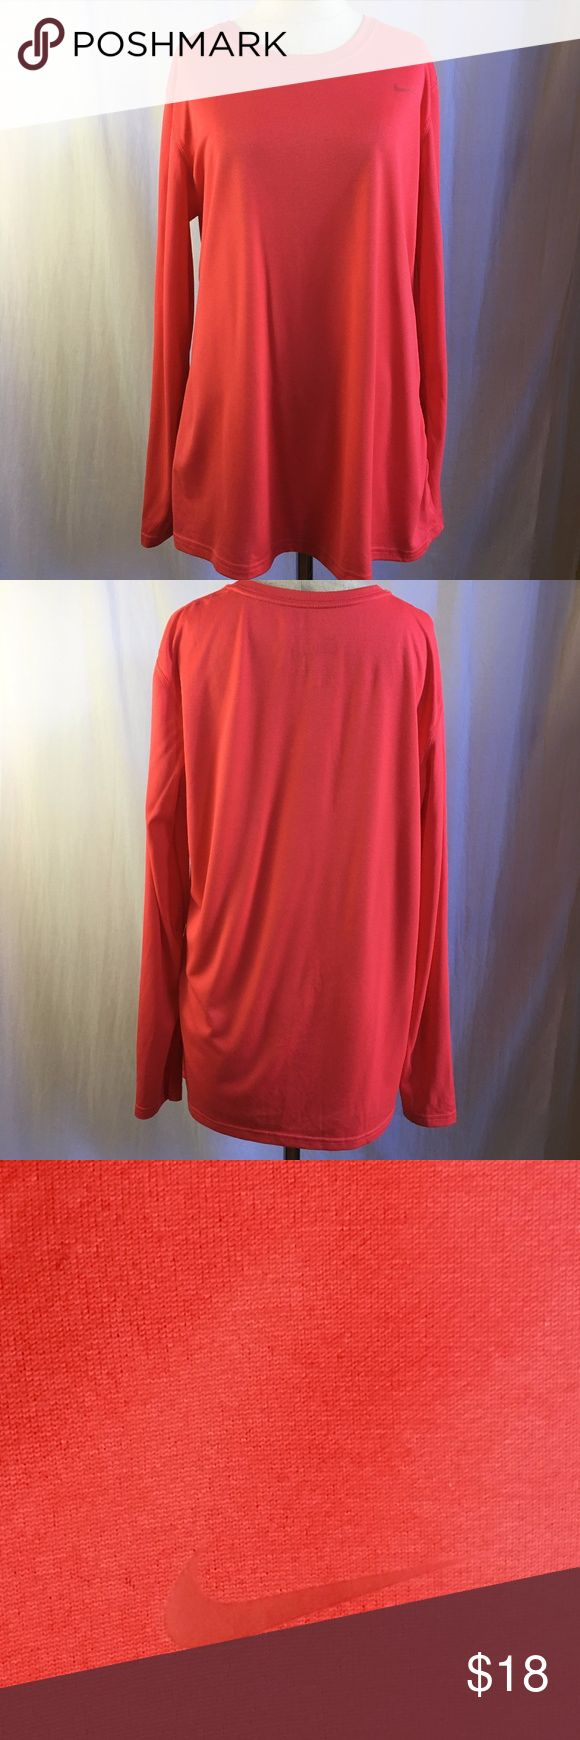 Nike Women's Dri-Fit Pink Long Sleeve Tee sz XL Nike Women's Dri-Fit Pink Long Sleeve Tee sz XL.  Salmon Pink color. Easy and comfortable.  100% Poly. Lightweight. Perfect for any sporting or daily activity. Sku#224107123-15 Nike Tops Tees - Long Sleeve